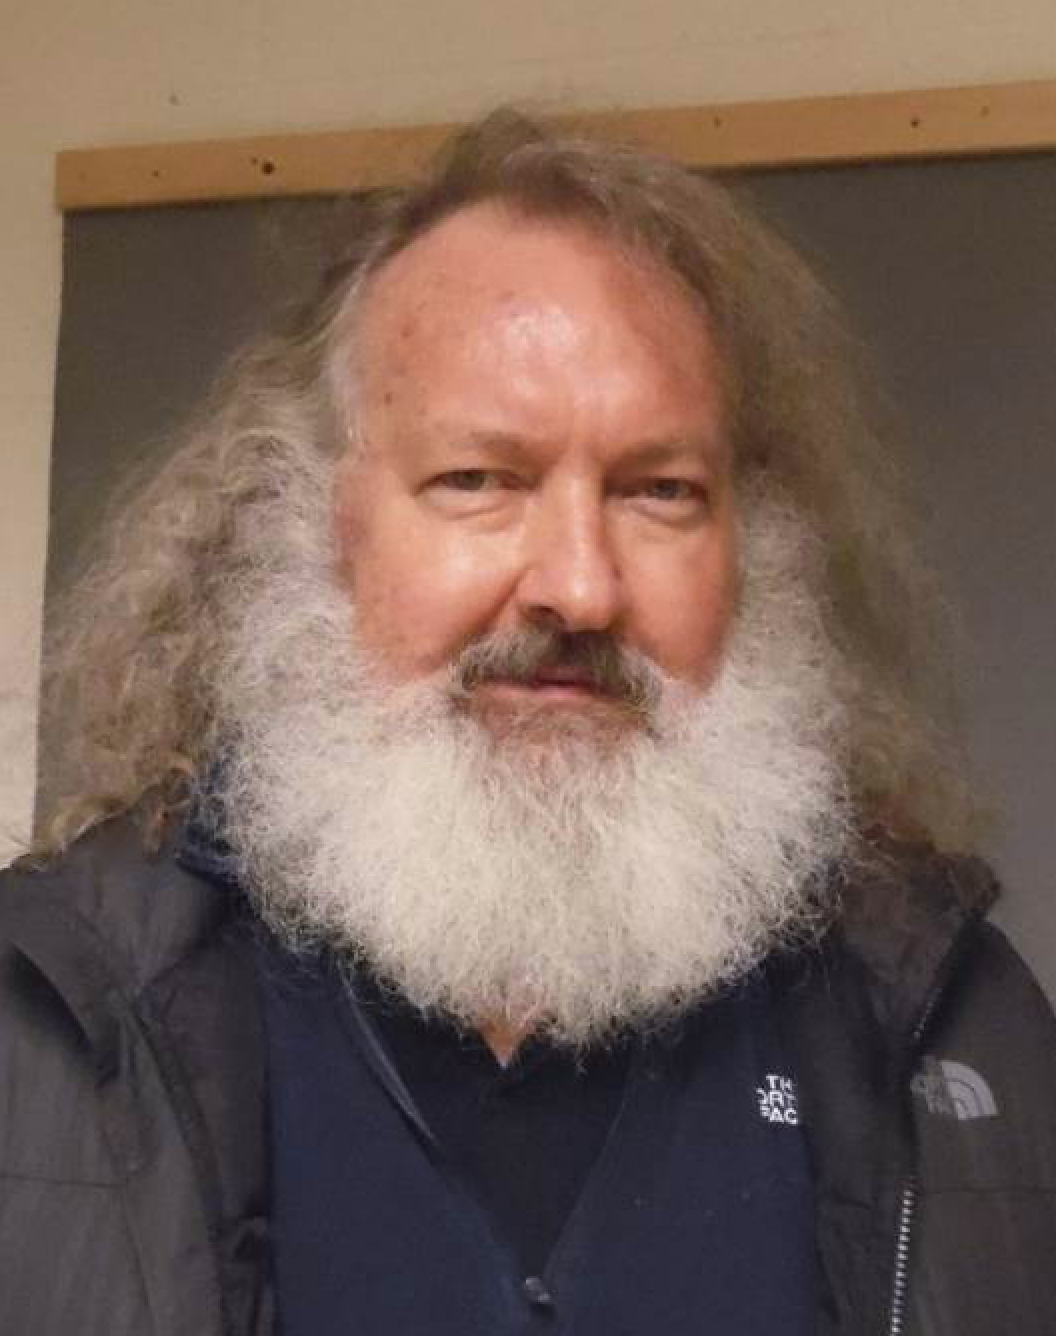 Actor Randy Quaid Held On $500,000 Bail